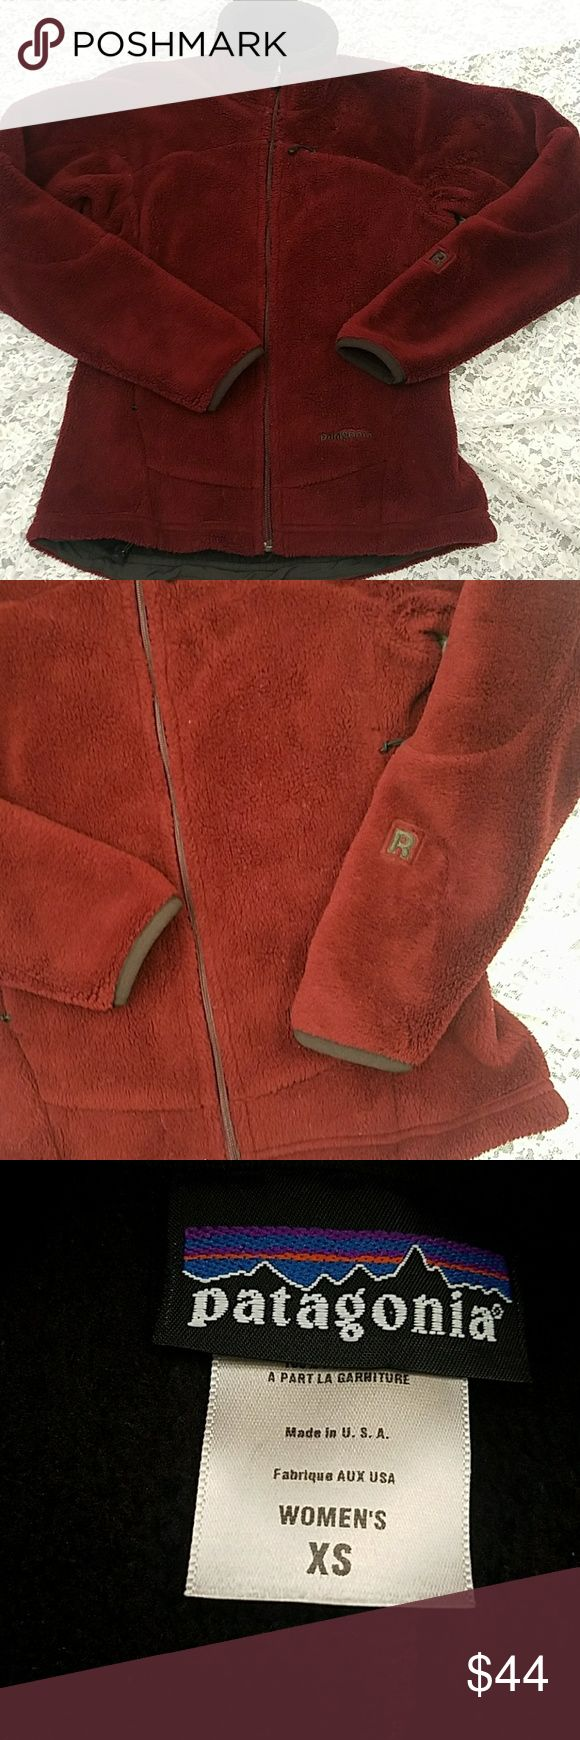 Patagonia zip rusty red fleece jacket XS Up for sale is a lightly-used soft furry jacket that measures 17 inches across the chest and 23.5 inches long Patagonia Jackets & Coats